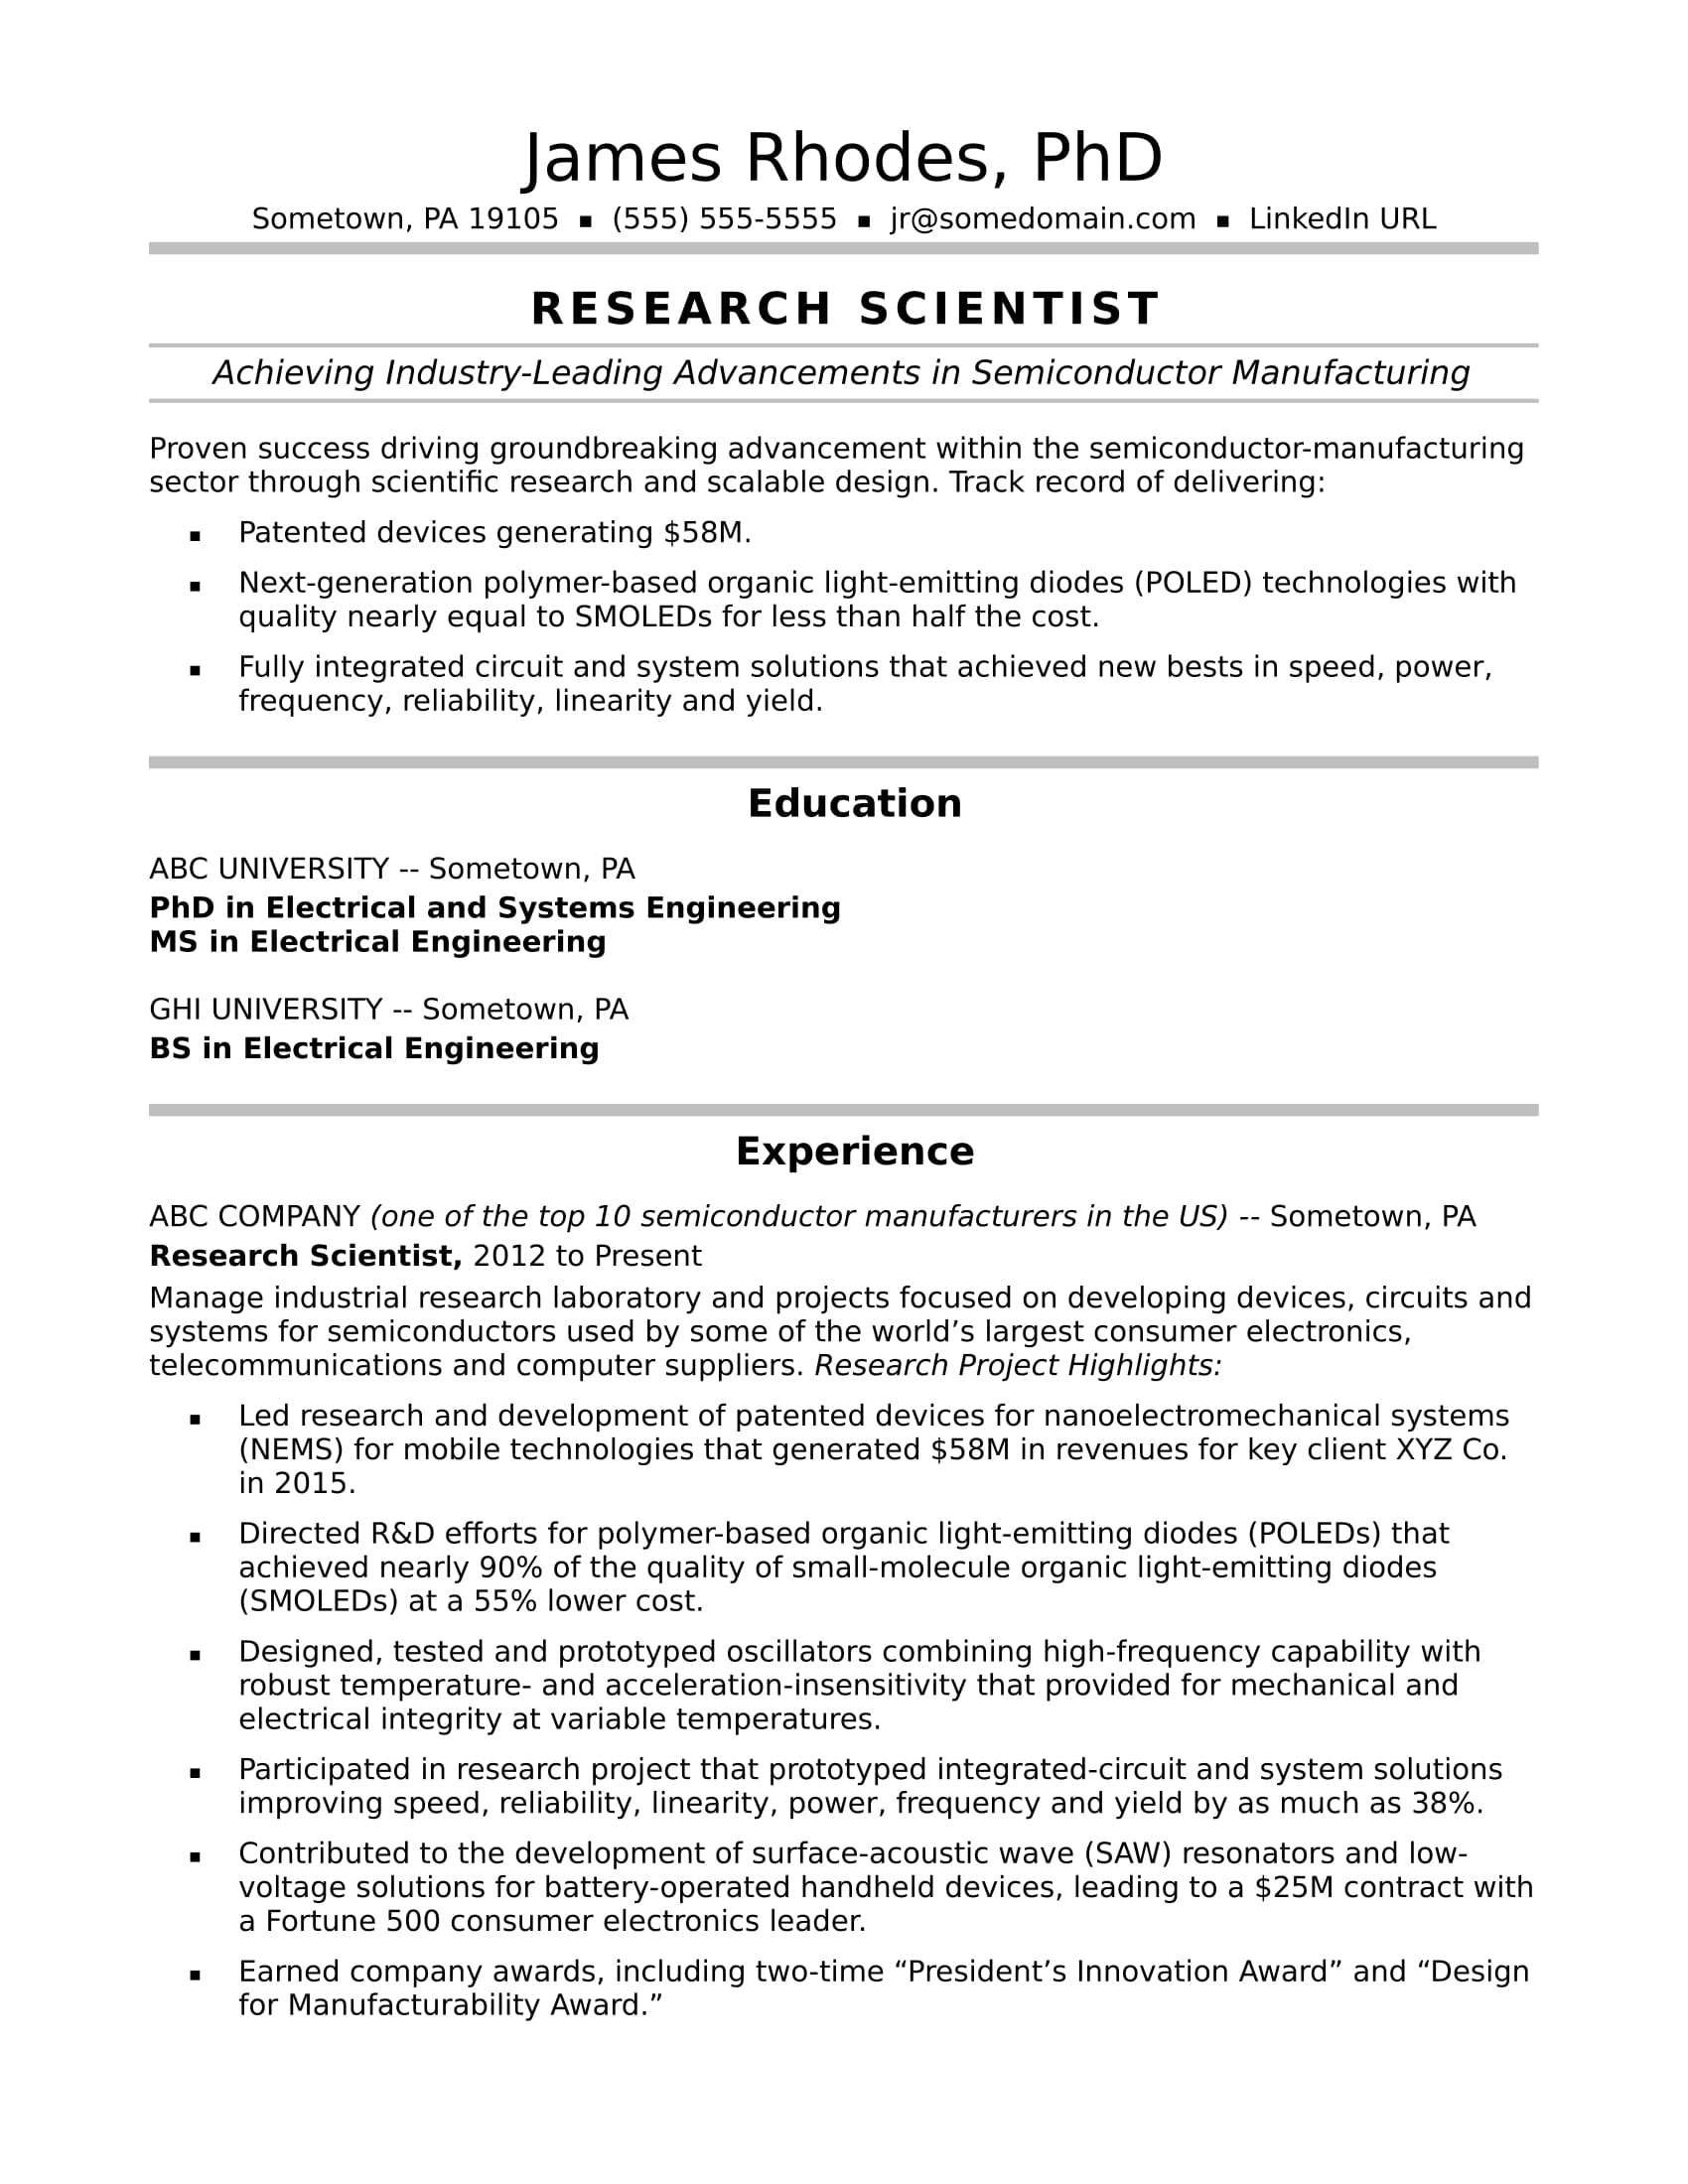 research scientist resume sample monster for phd application midlevel self employed Resume Resume For Phd Application